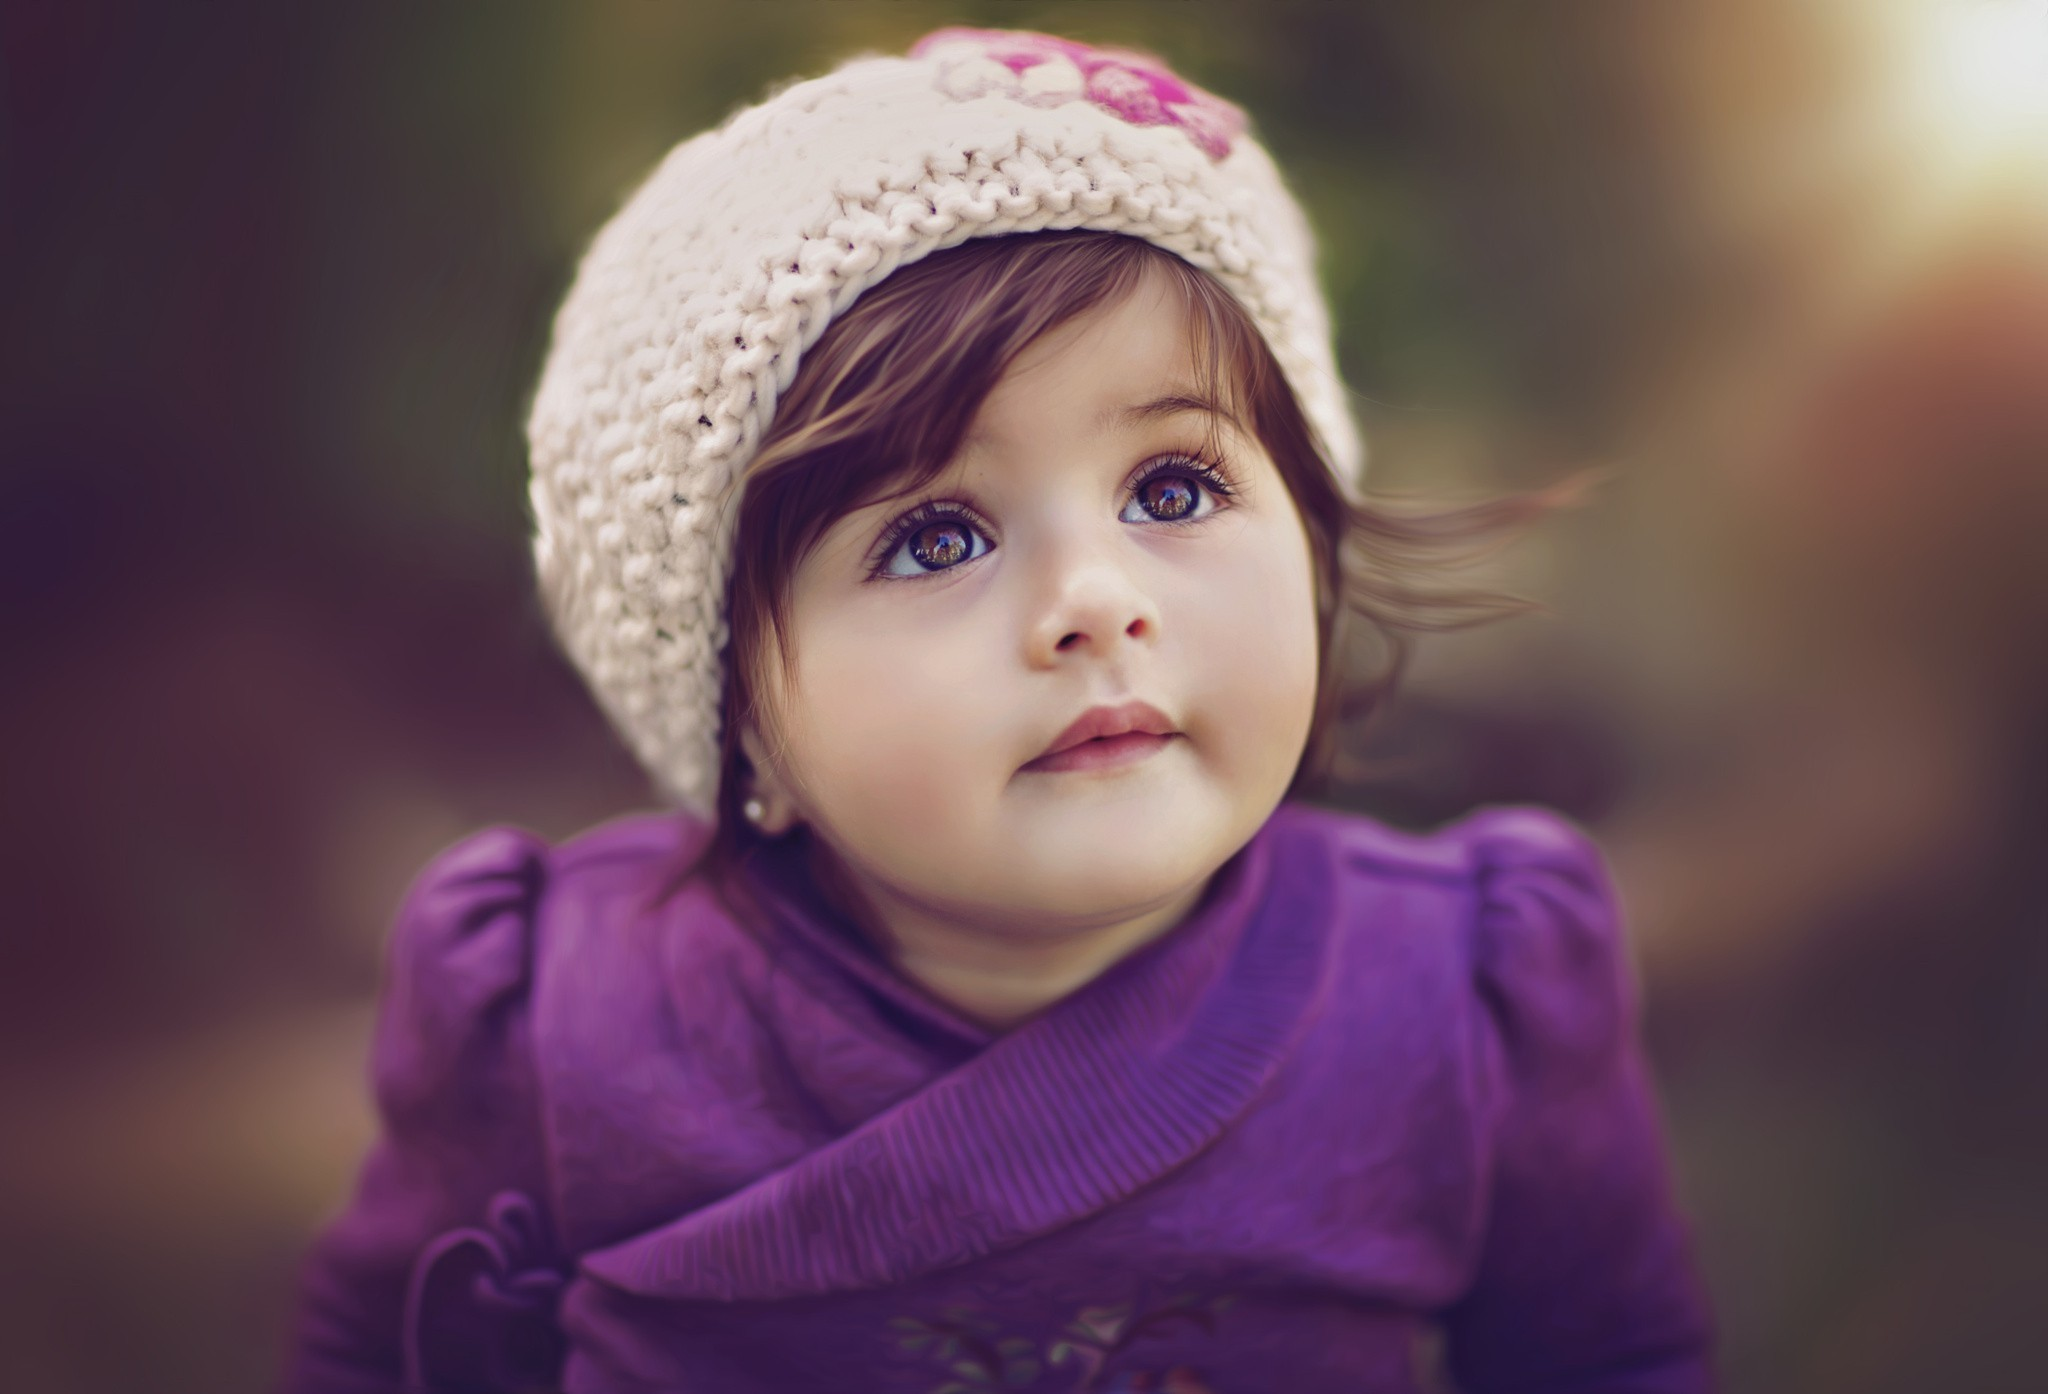 2048x1394 1920x1200 So cute and lovely small baby girl wallpapers